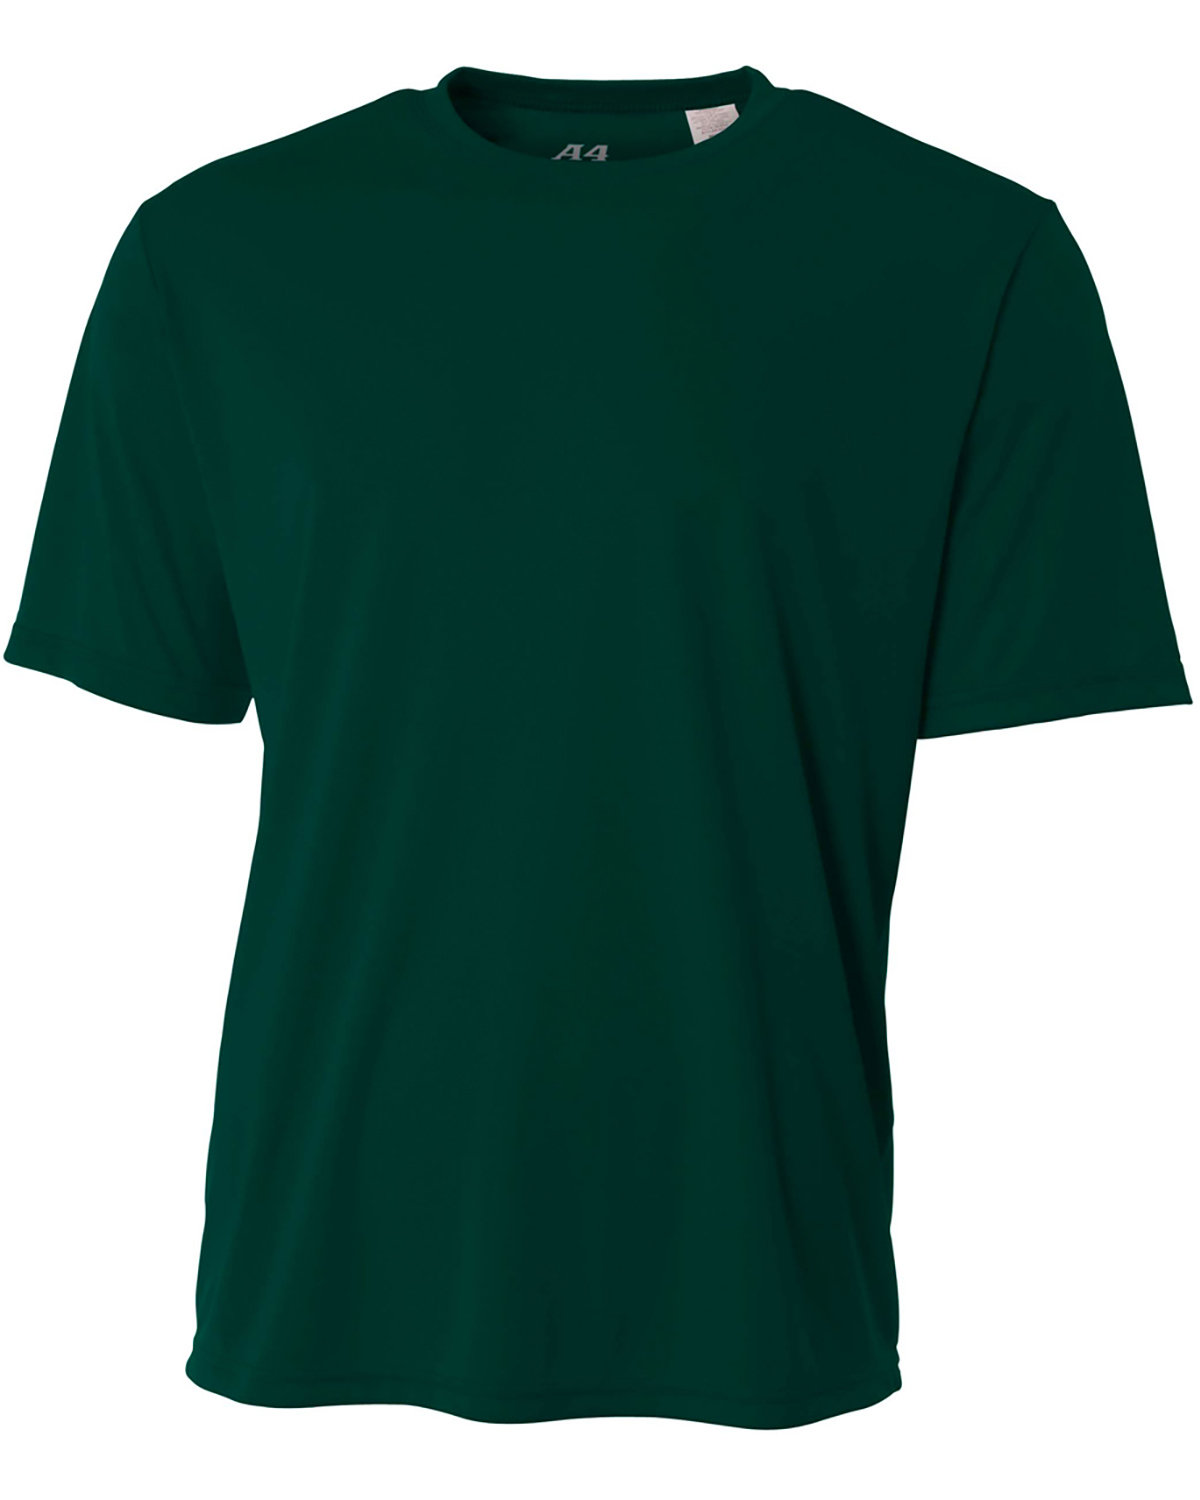 A4 Youth Cooling Performance T-Shirt FOREST